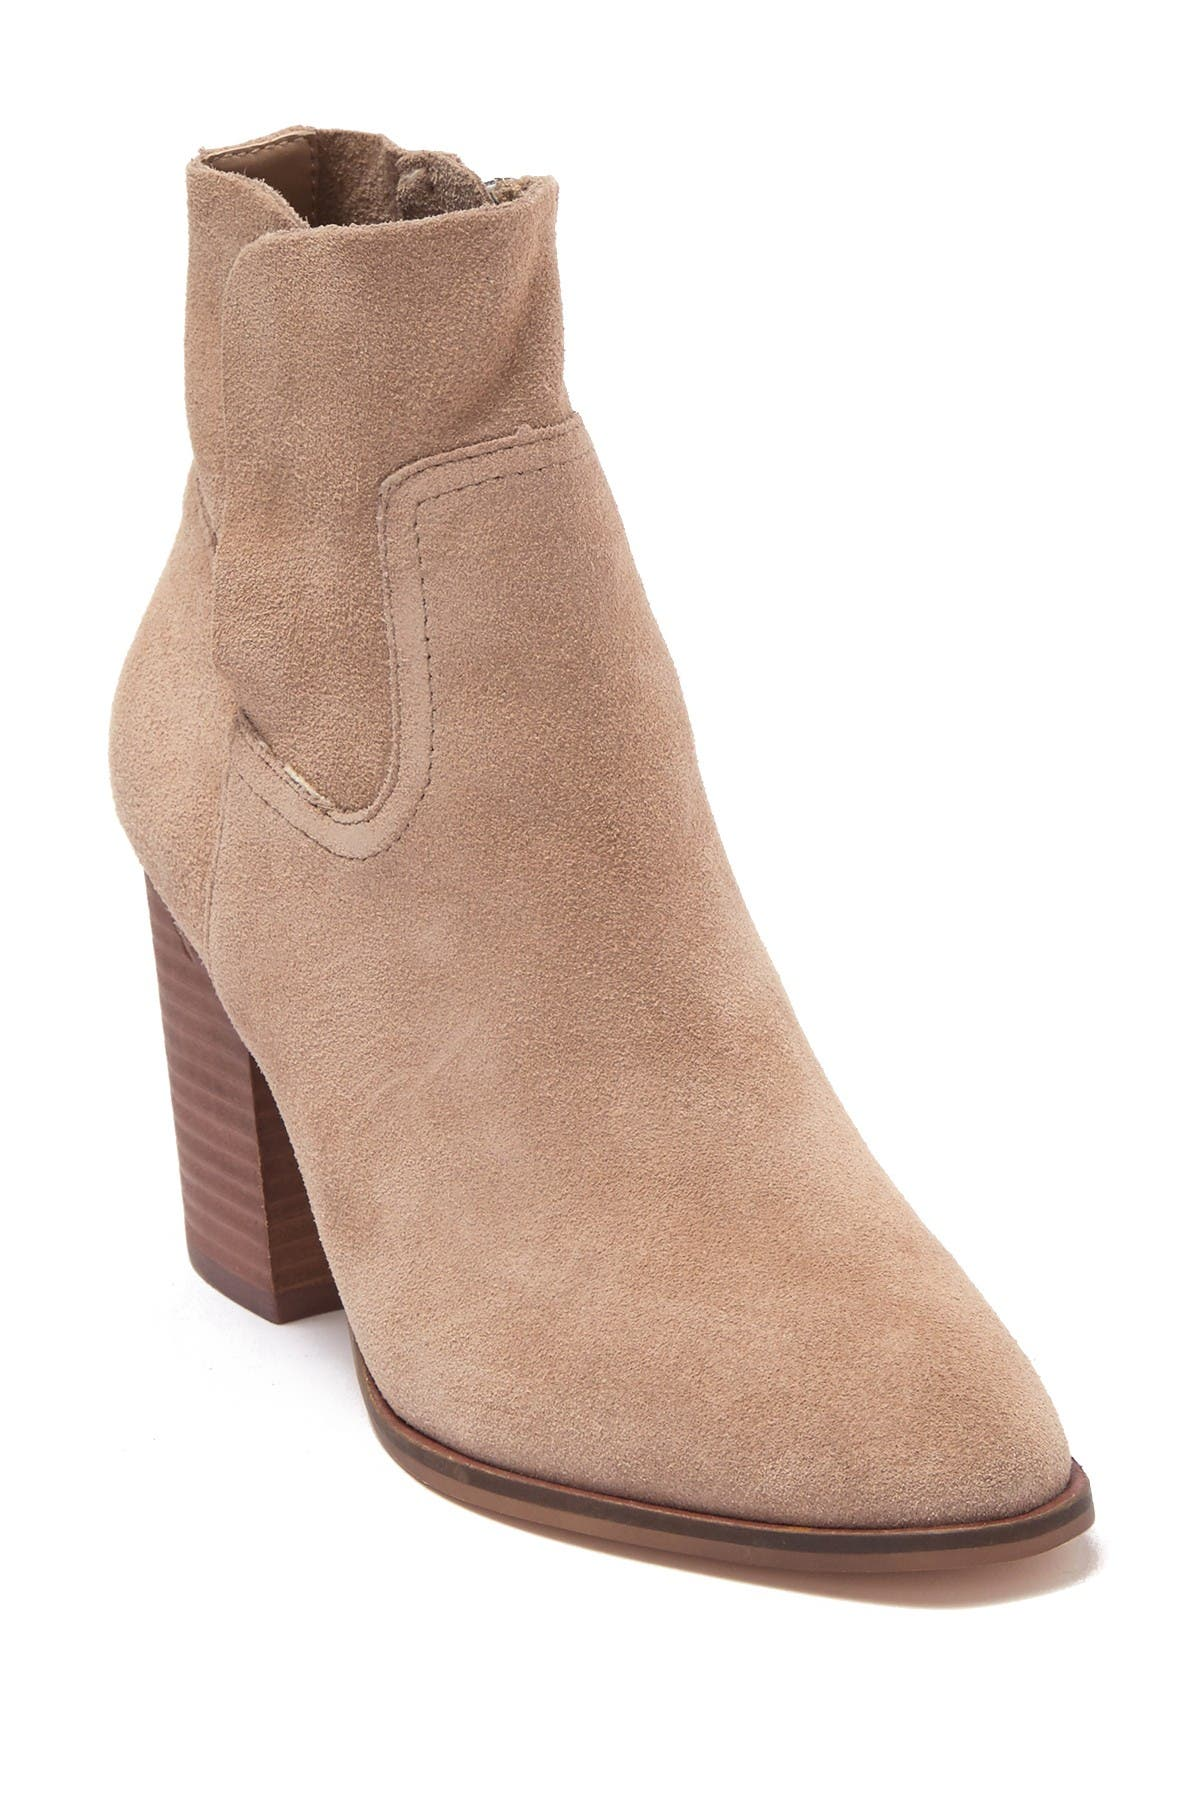 Image of Steve Madden Davy Bootie